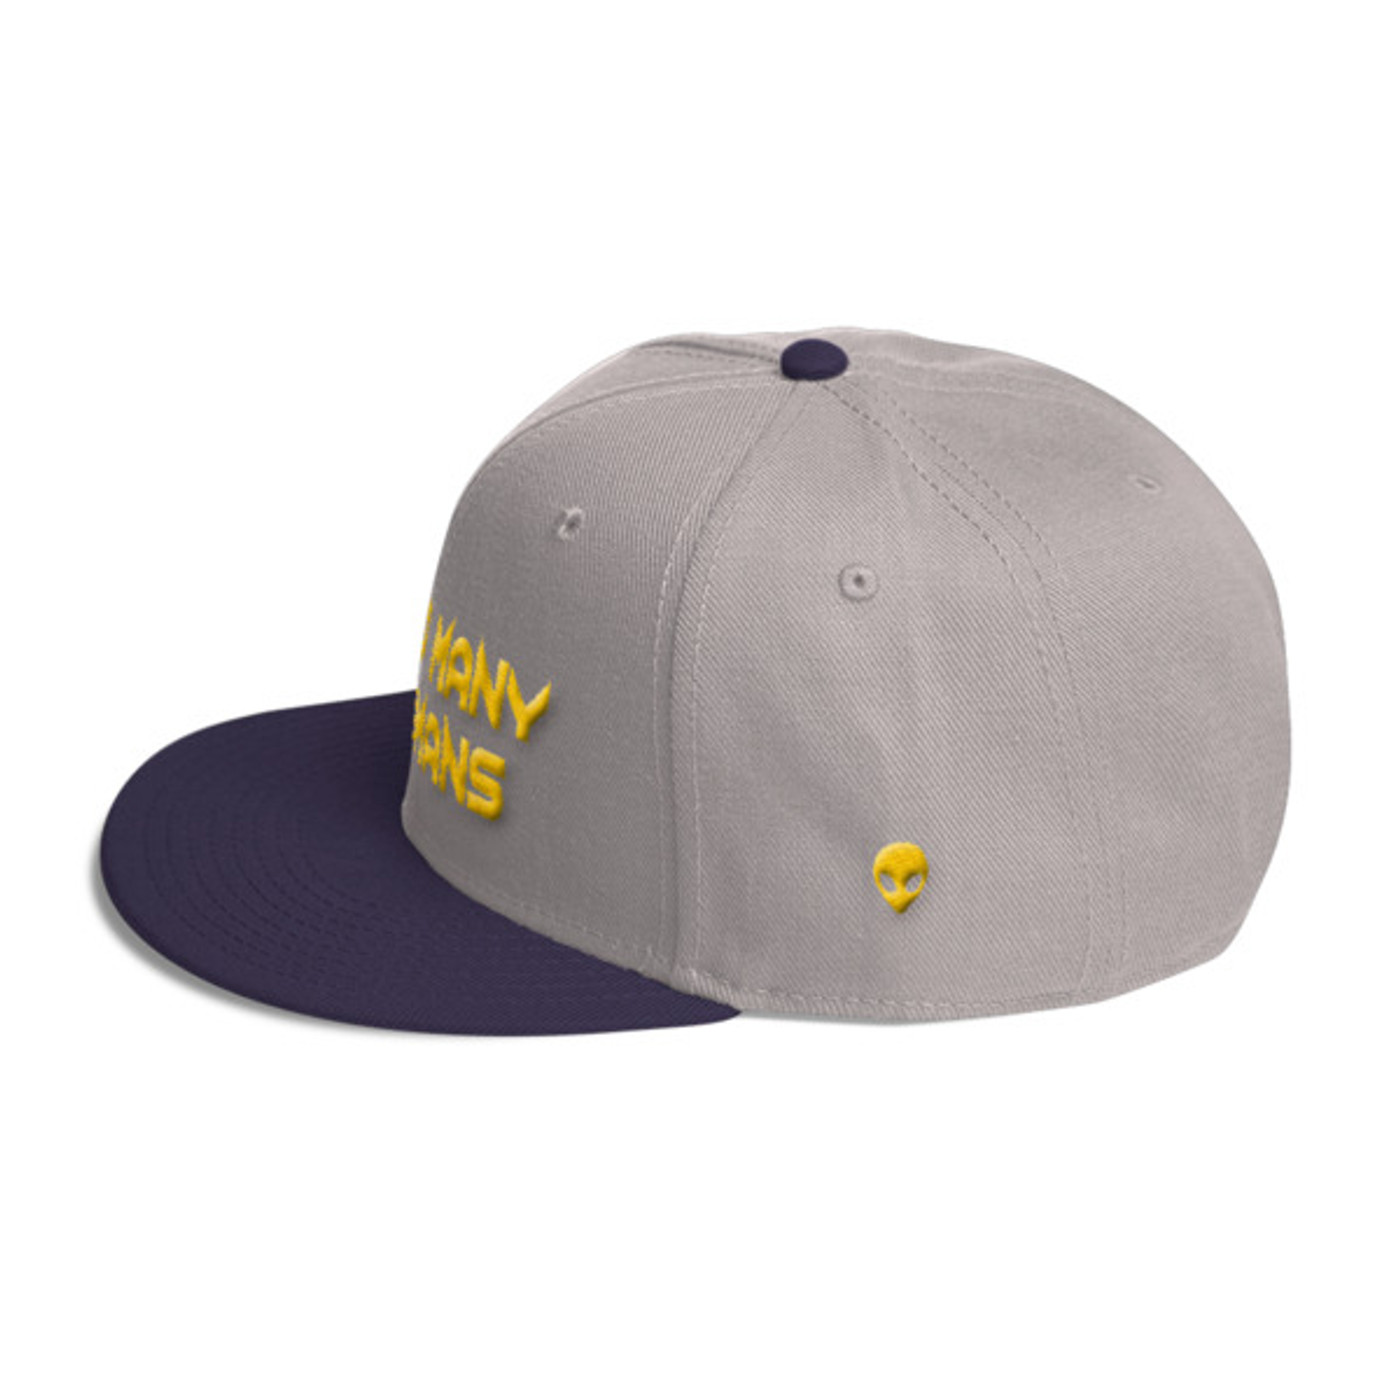 Too Many Humans Gold Wool Blend Snapback